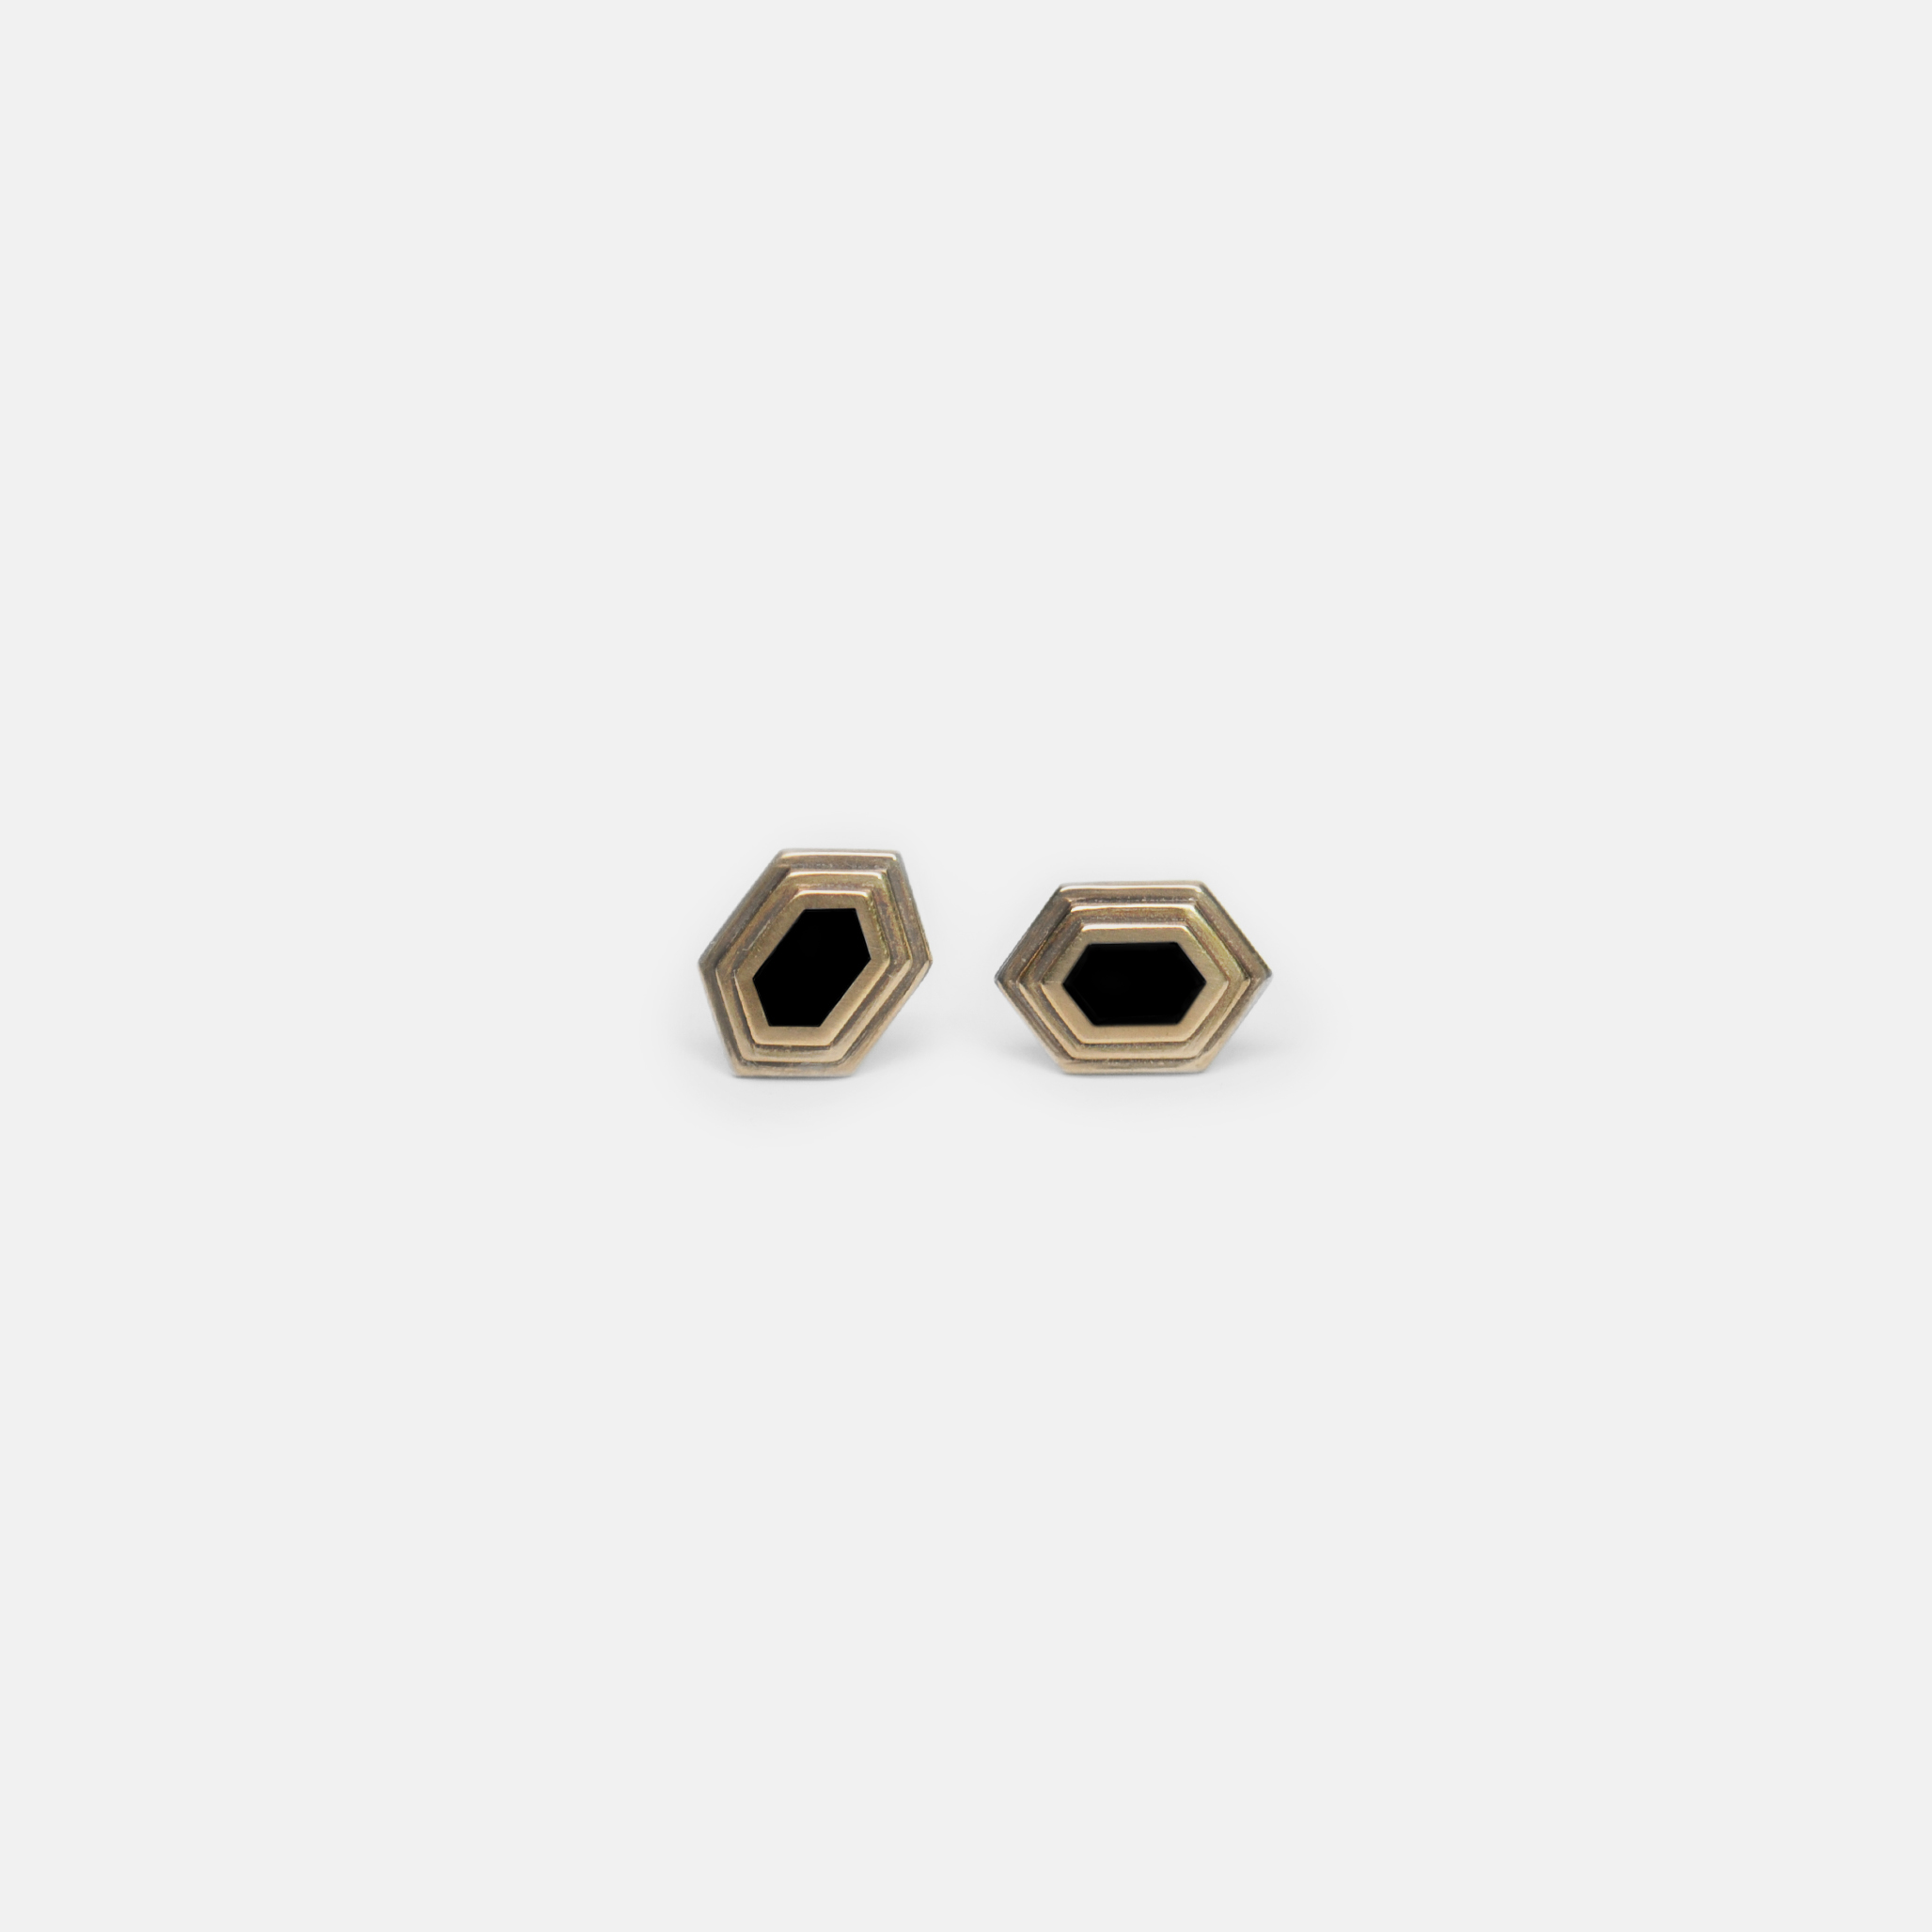 Off_White_Marisa_Lomonaco_Stepped_Stud_Earring_0003_Bronze_Black.jpg